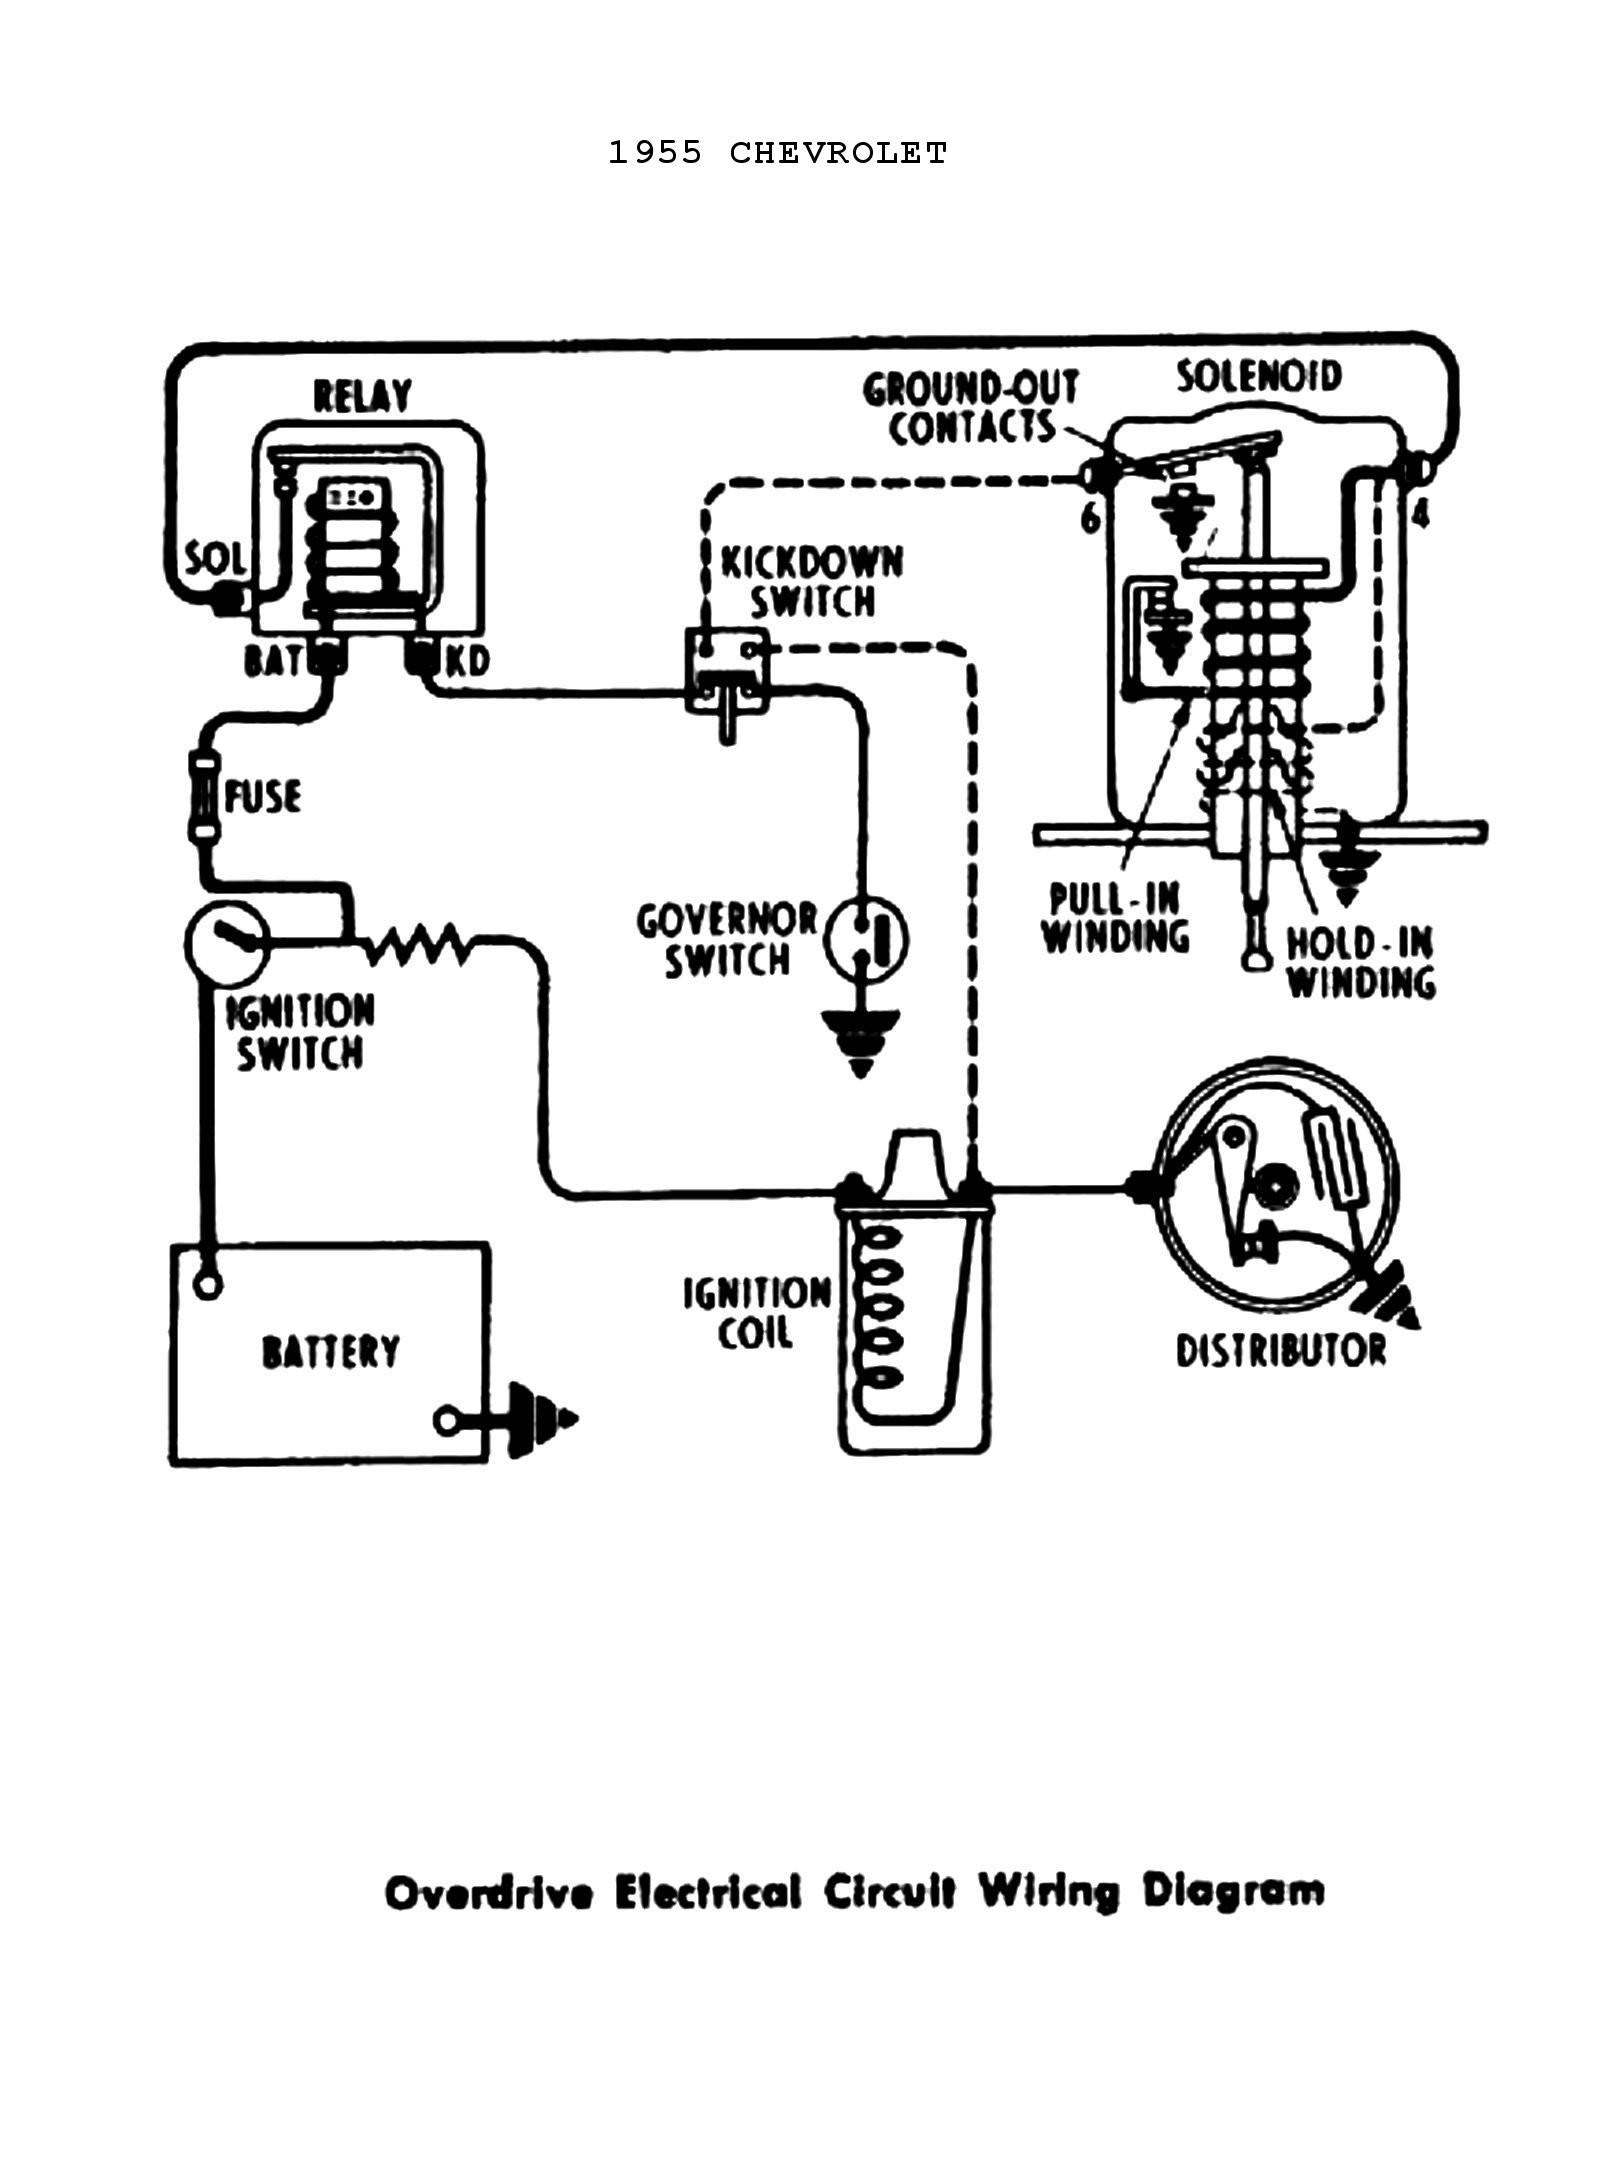 Power window switch diagram wiring diagram in addition 57 chevy heater diagram also 1996 chevy of